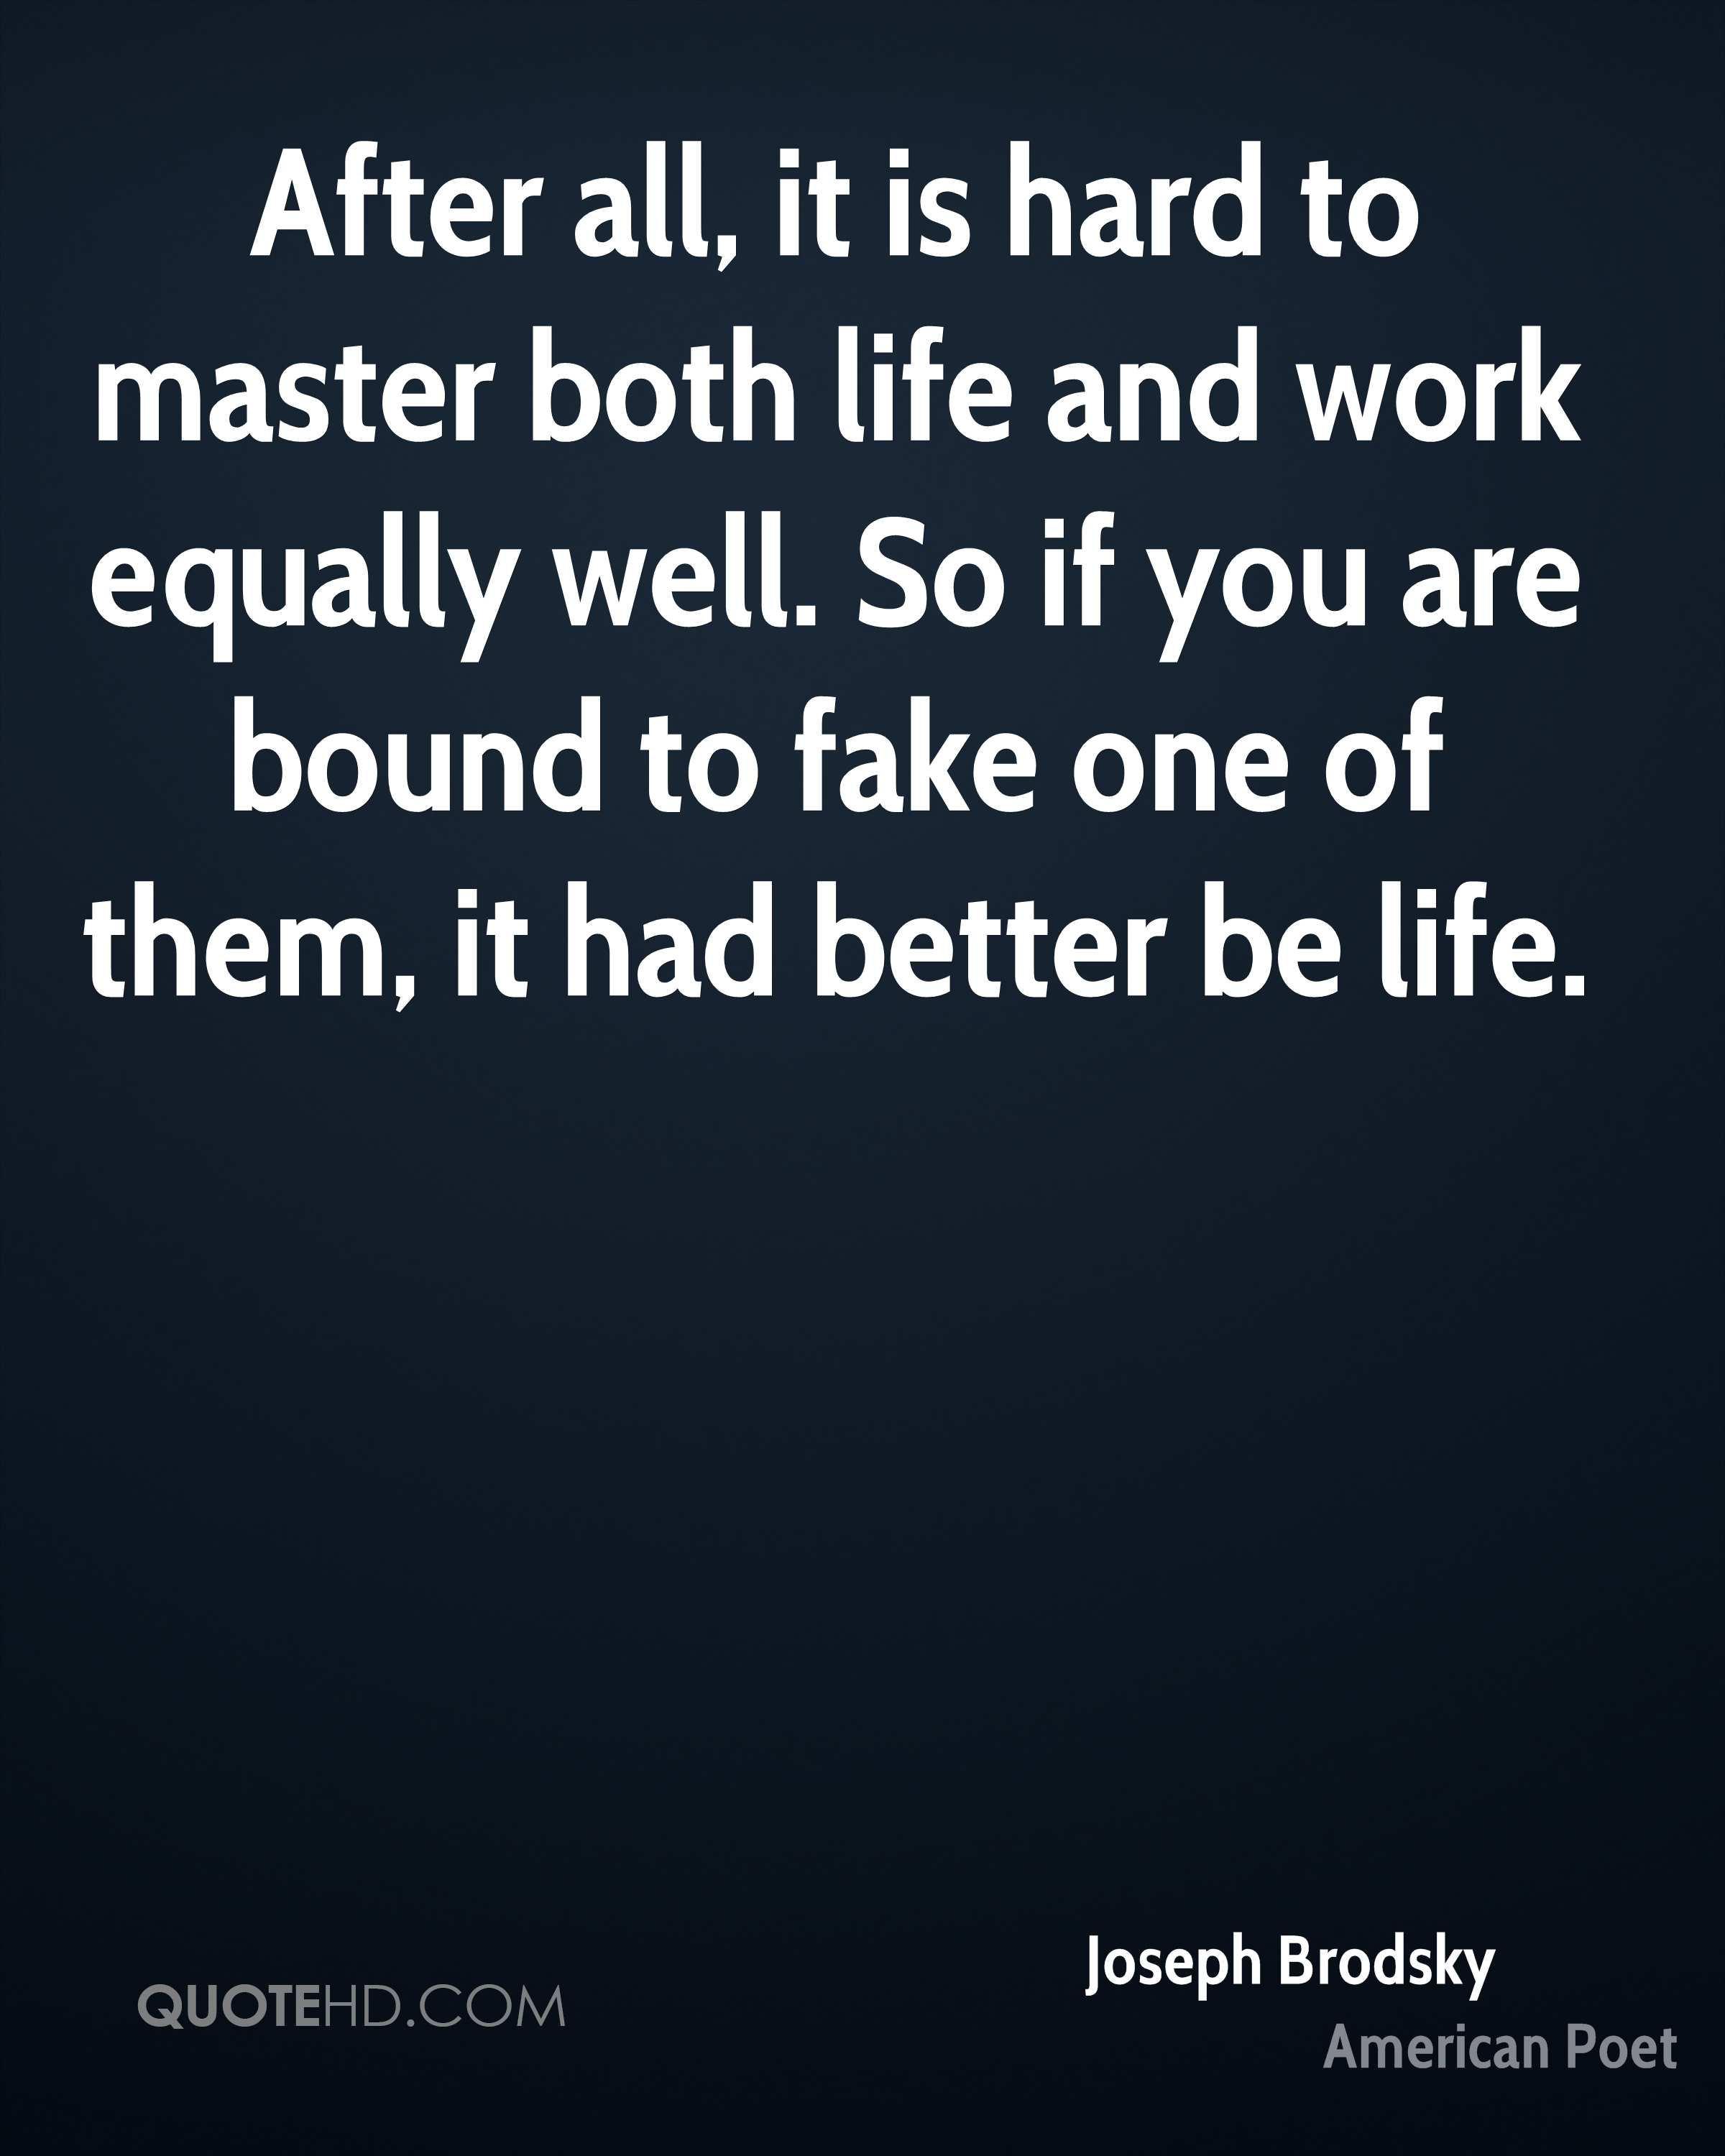 After all, it is hard to master both life and work equally well. So if you are bound to fake one of them, it had better be life.